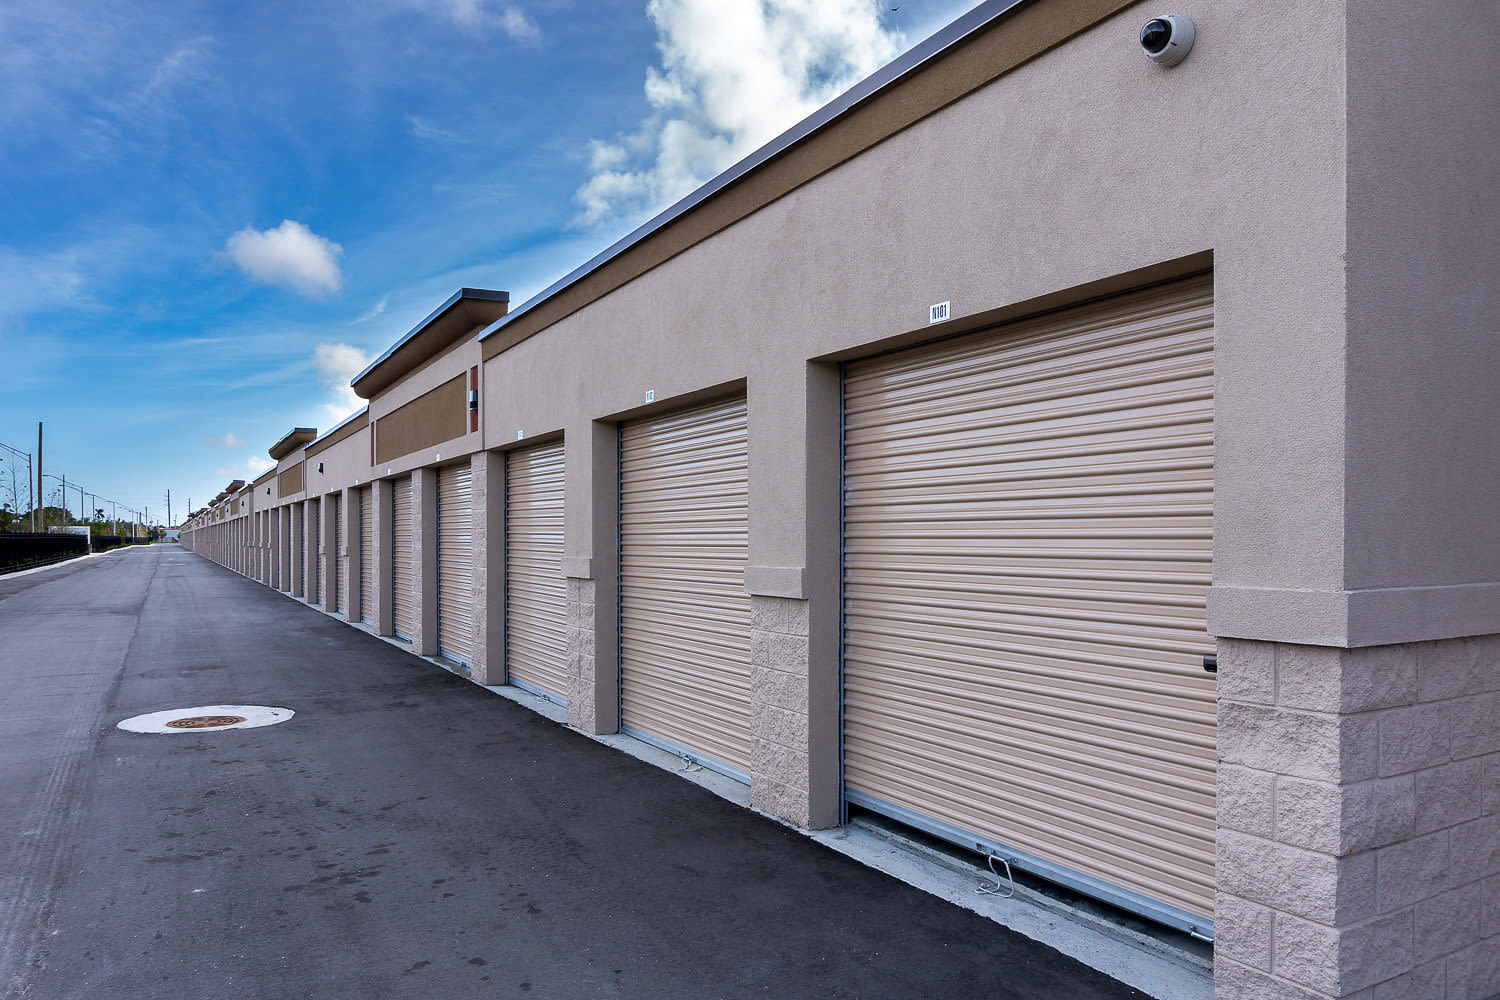 Exterior units at StorQuest Self Storage in St Cloud, FL